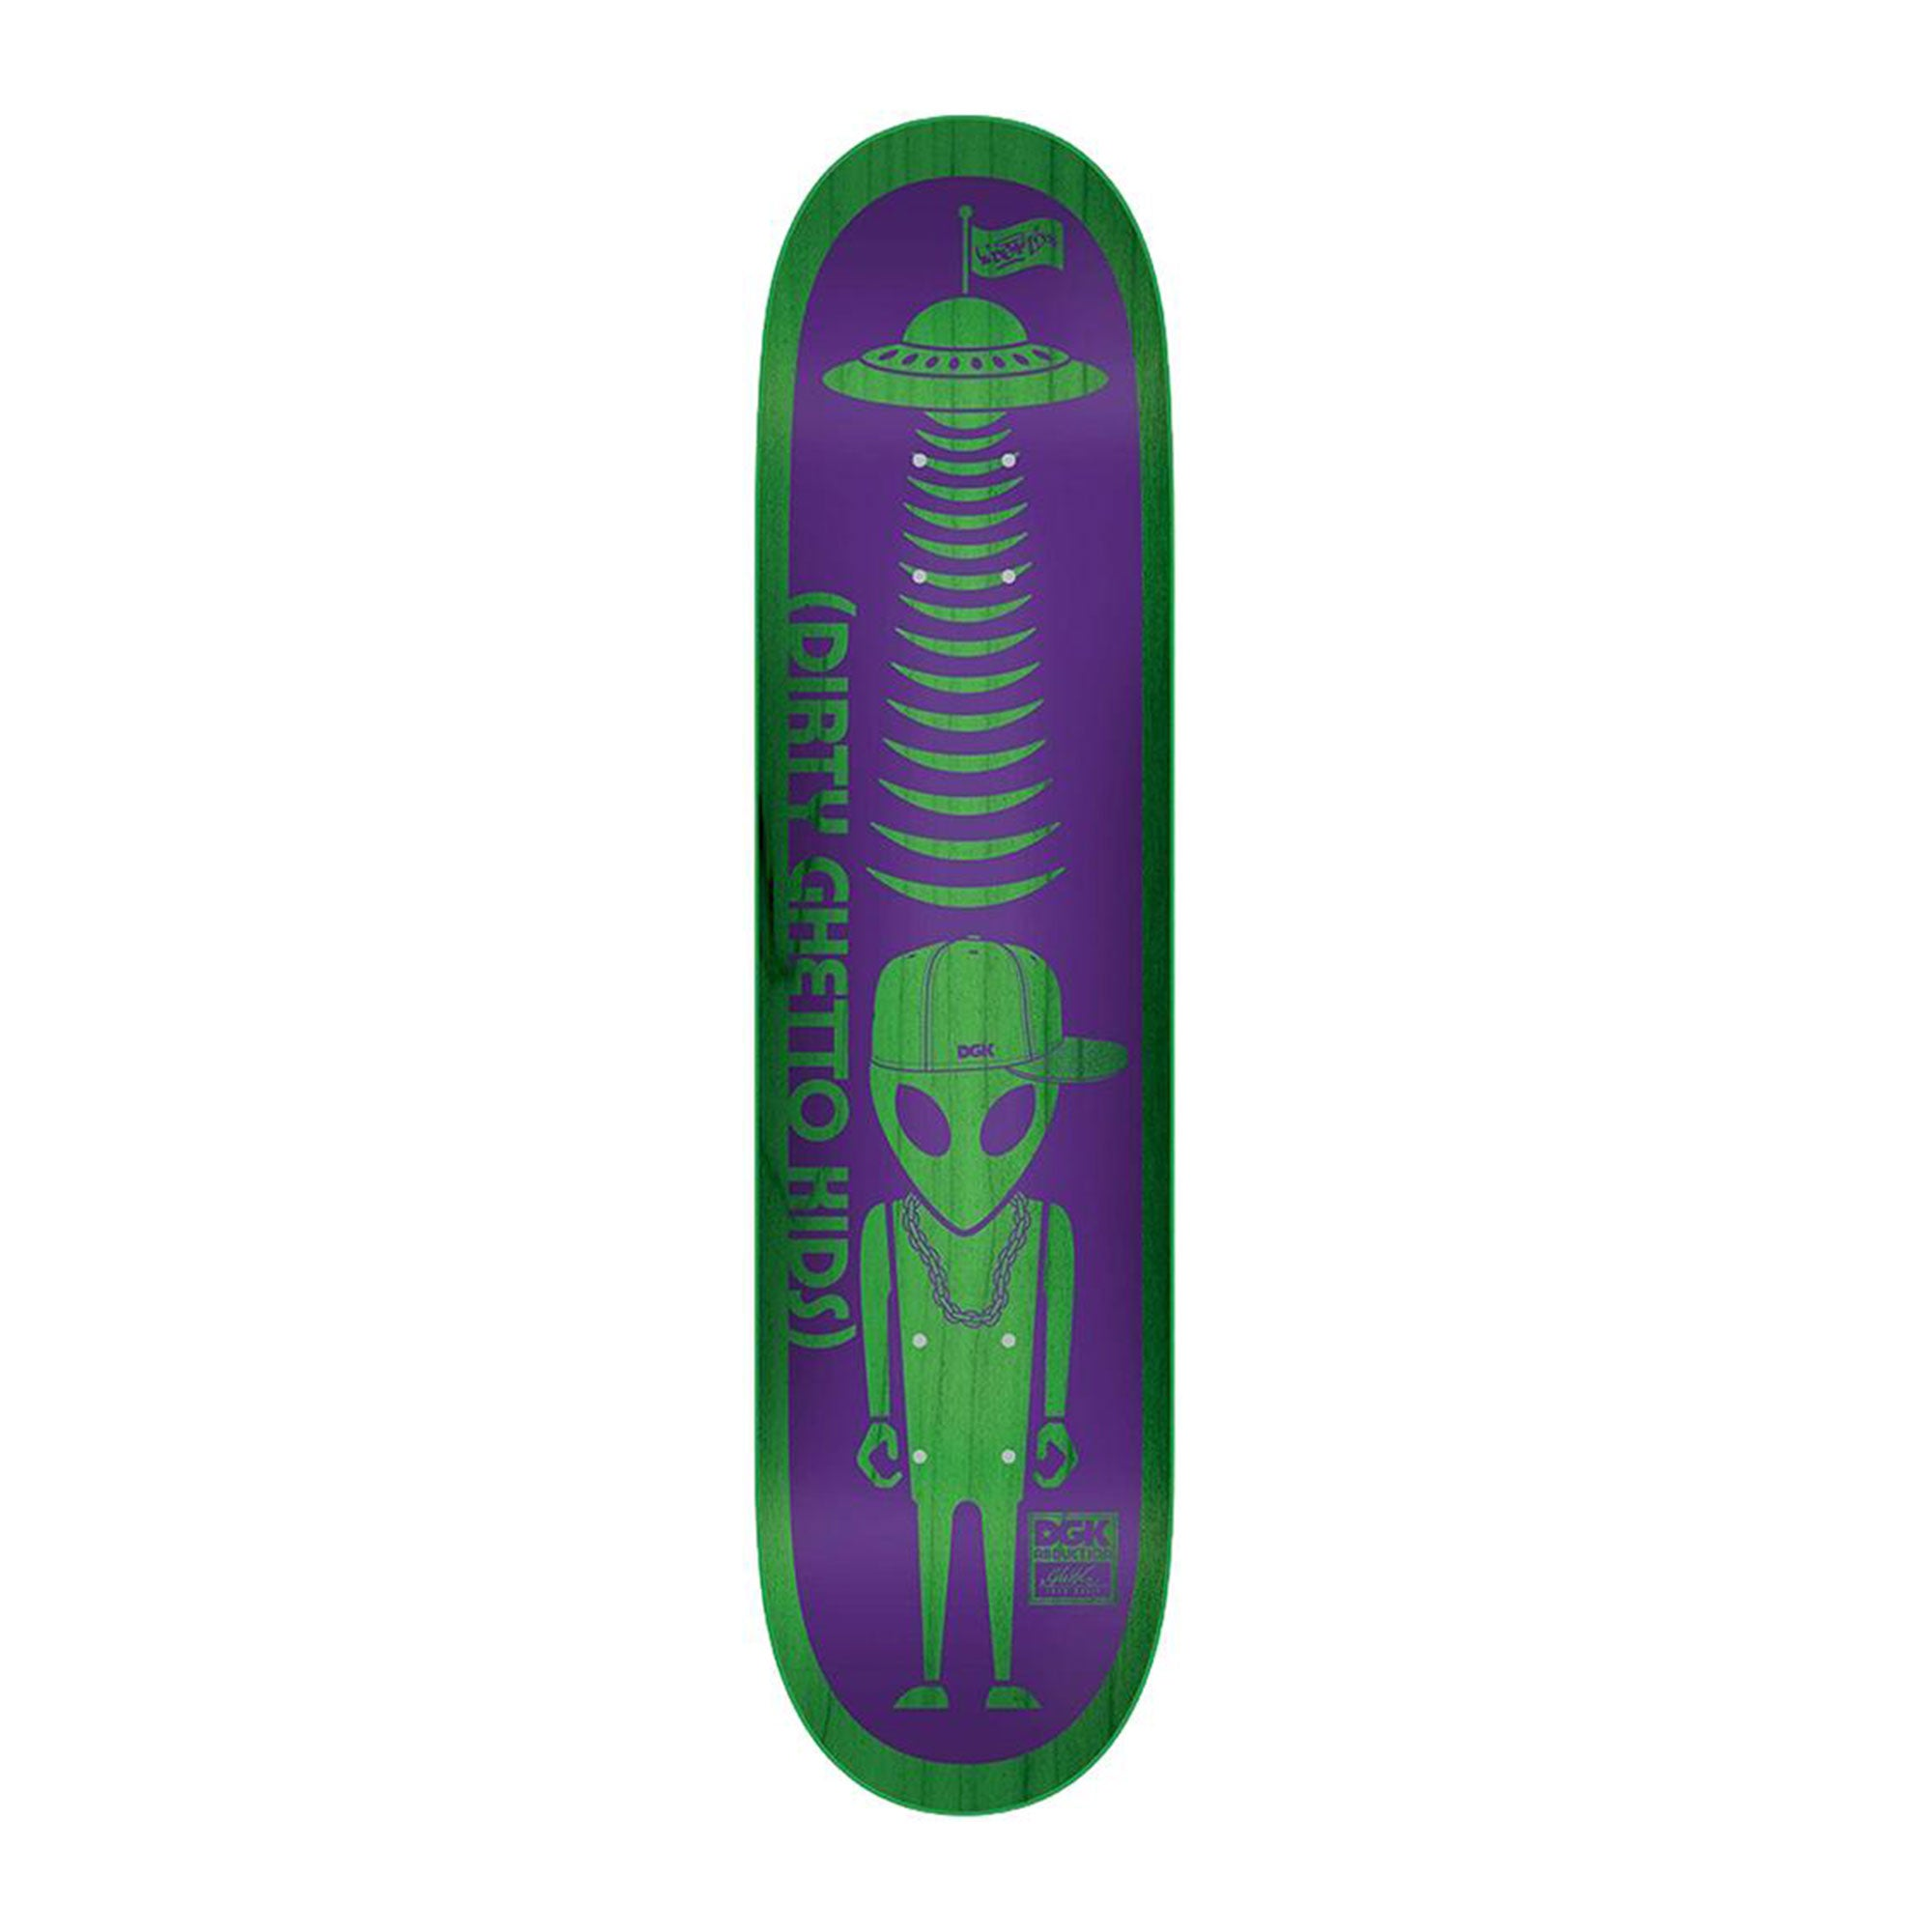 DGK Abduction Kalis Deck Product Photo #1